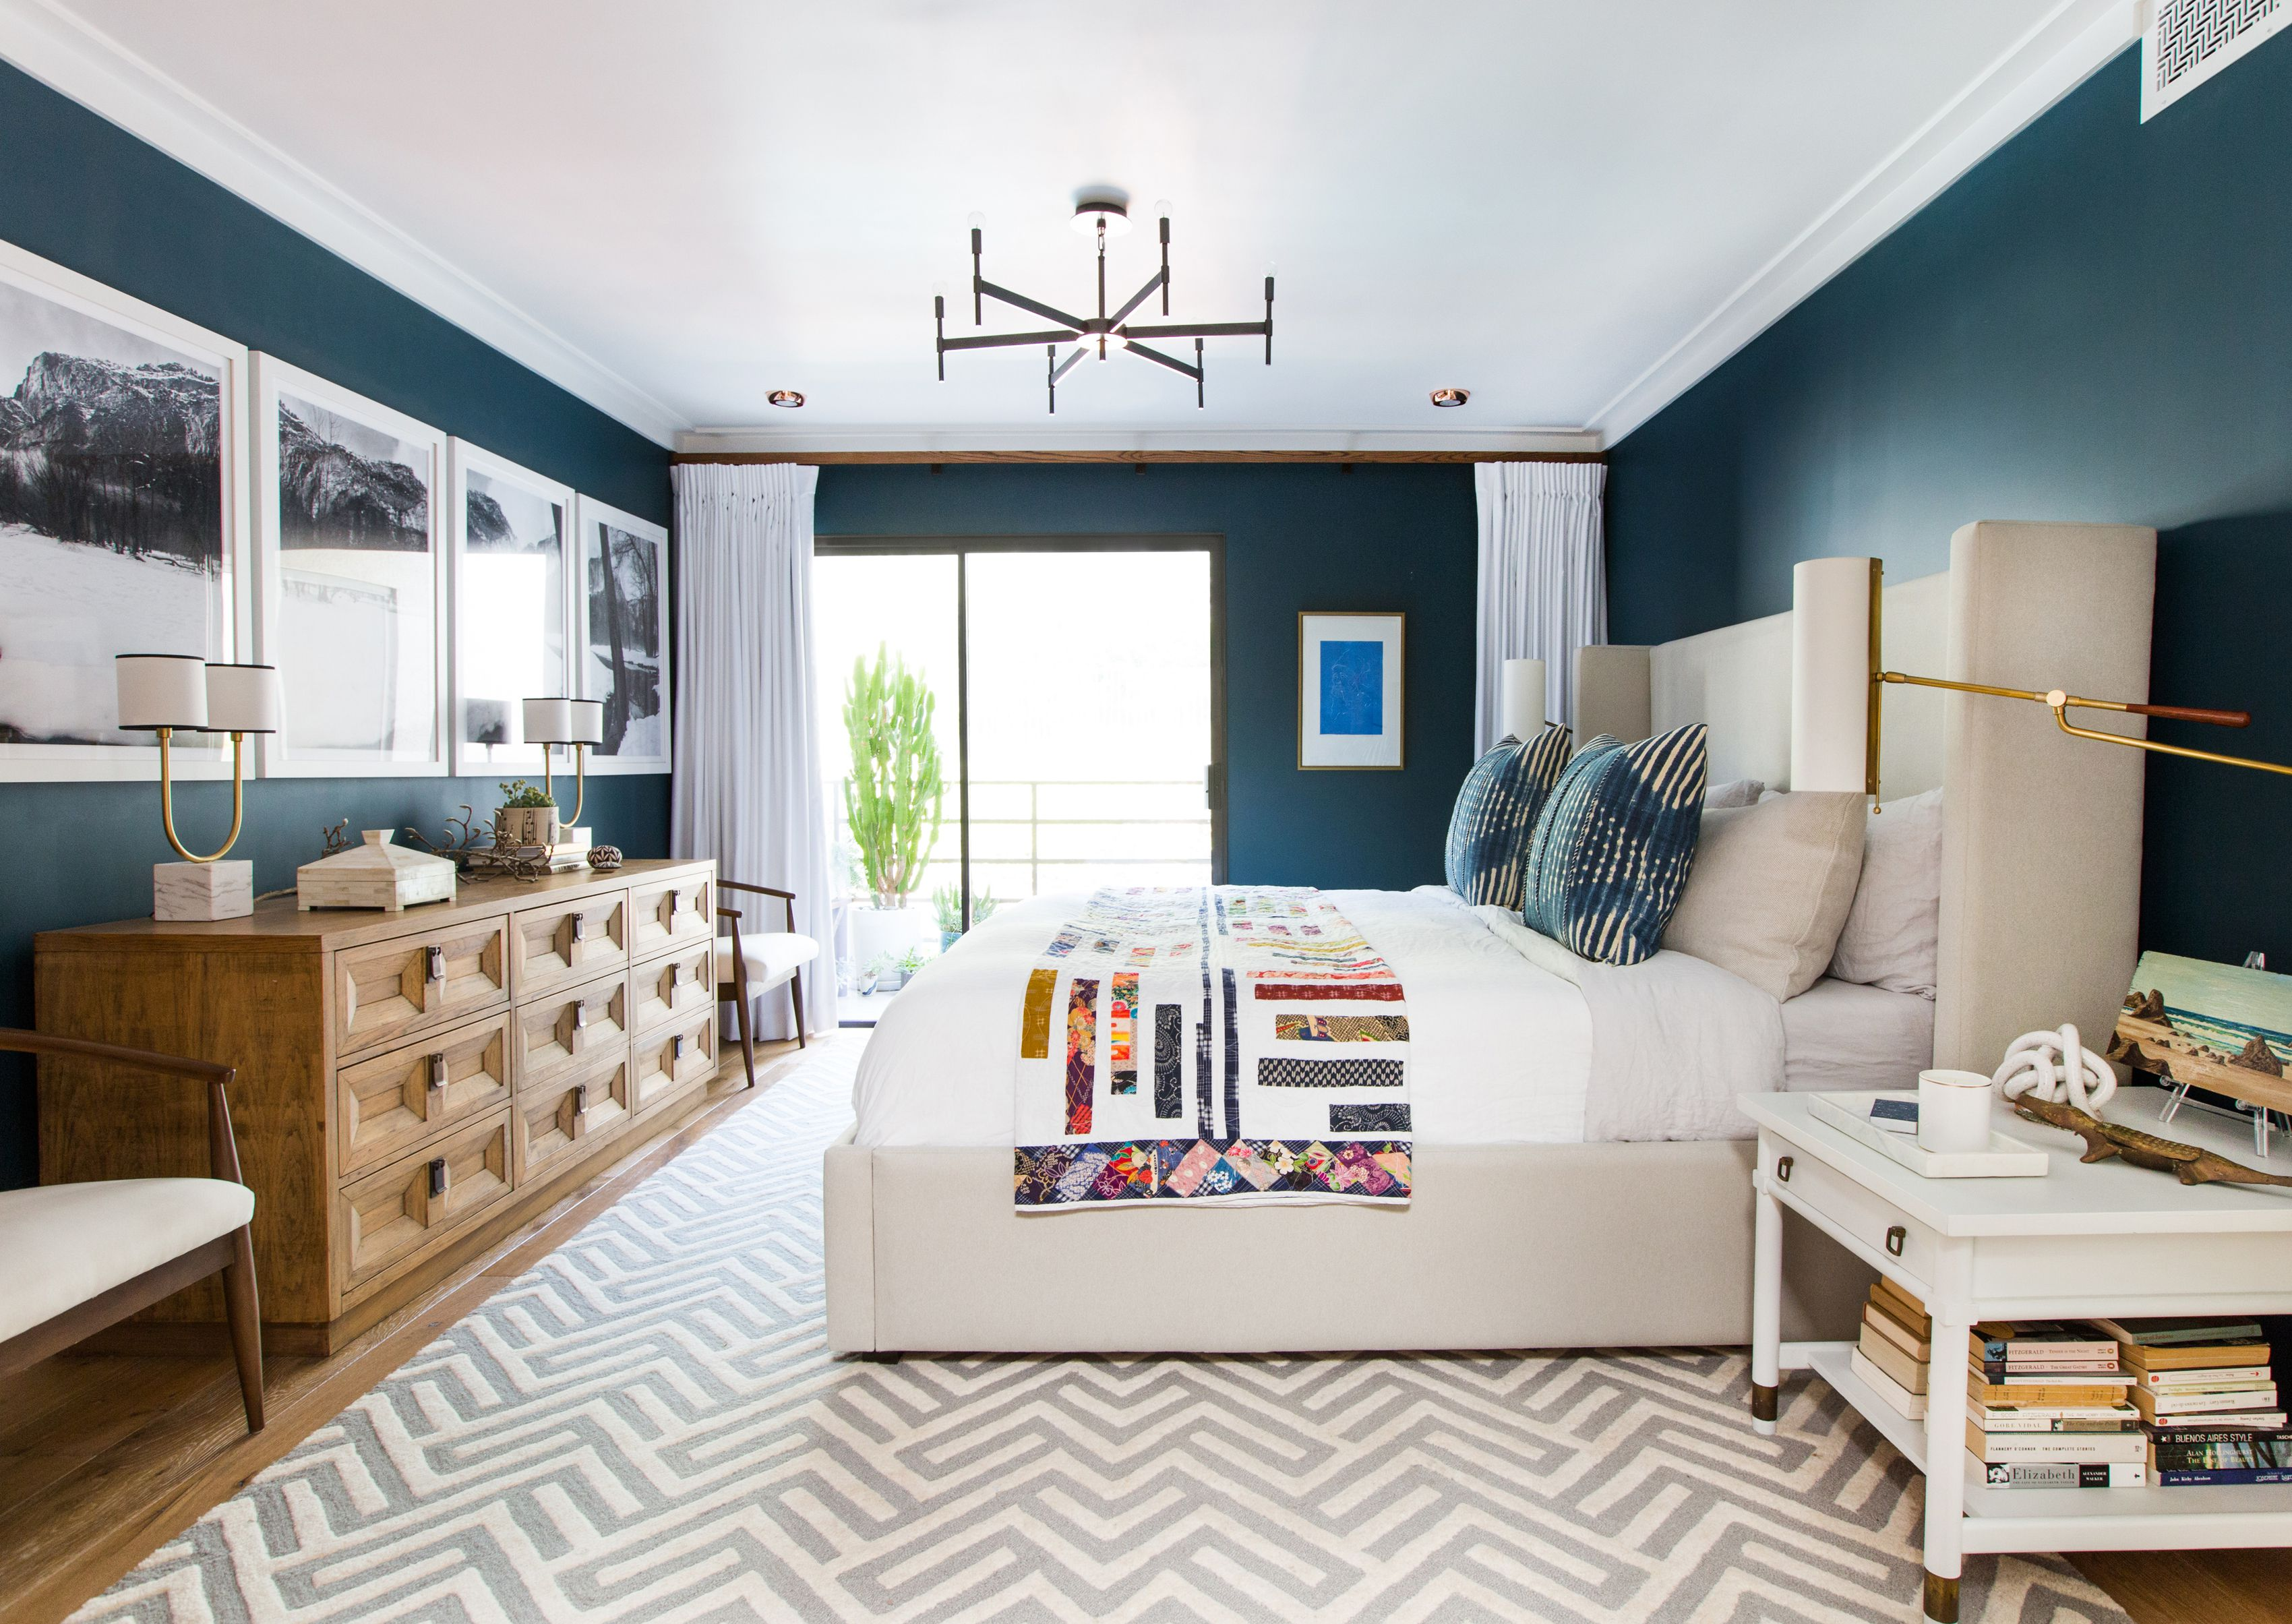 How Do You Design Home For Someone With >> 5 Down To Earth Design Elements To Include In Your Next Home Remodel